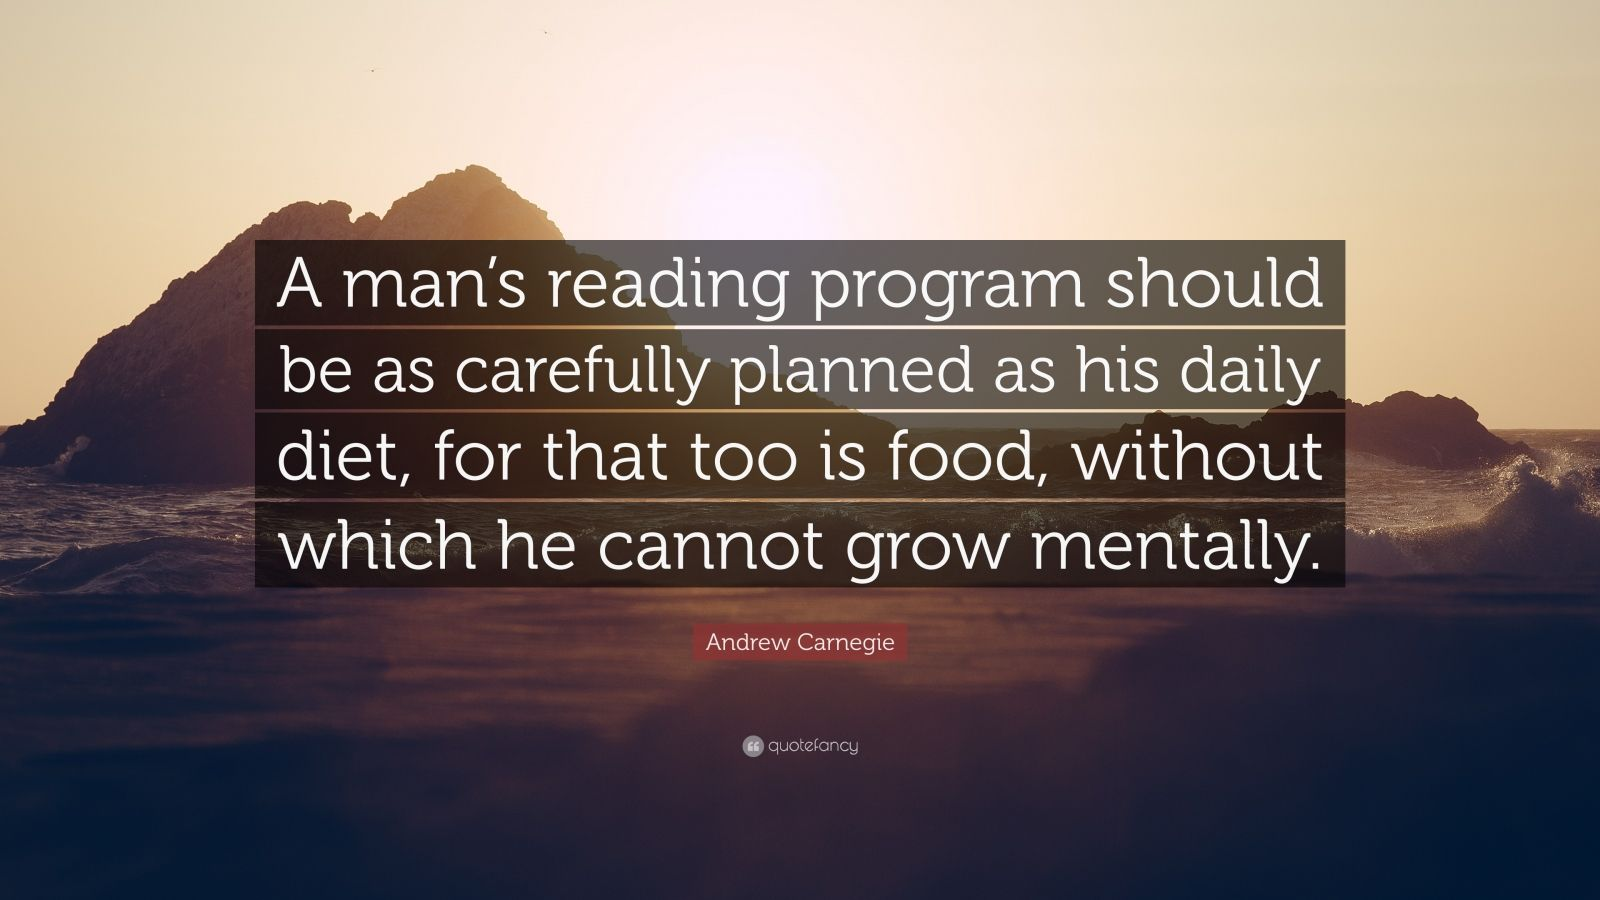 """Andrew Carnegie Quote: """"A man's reading program should be as carefully planned as his daily diet, for that too is food, without which he cannot grow mentally."""""""